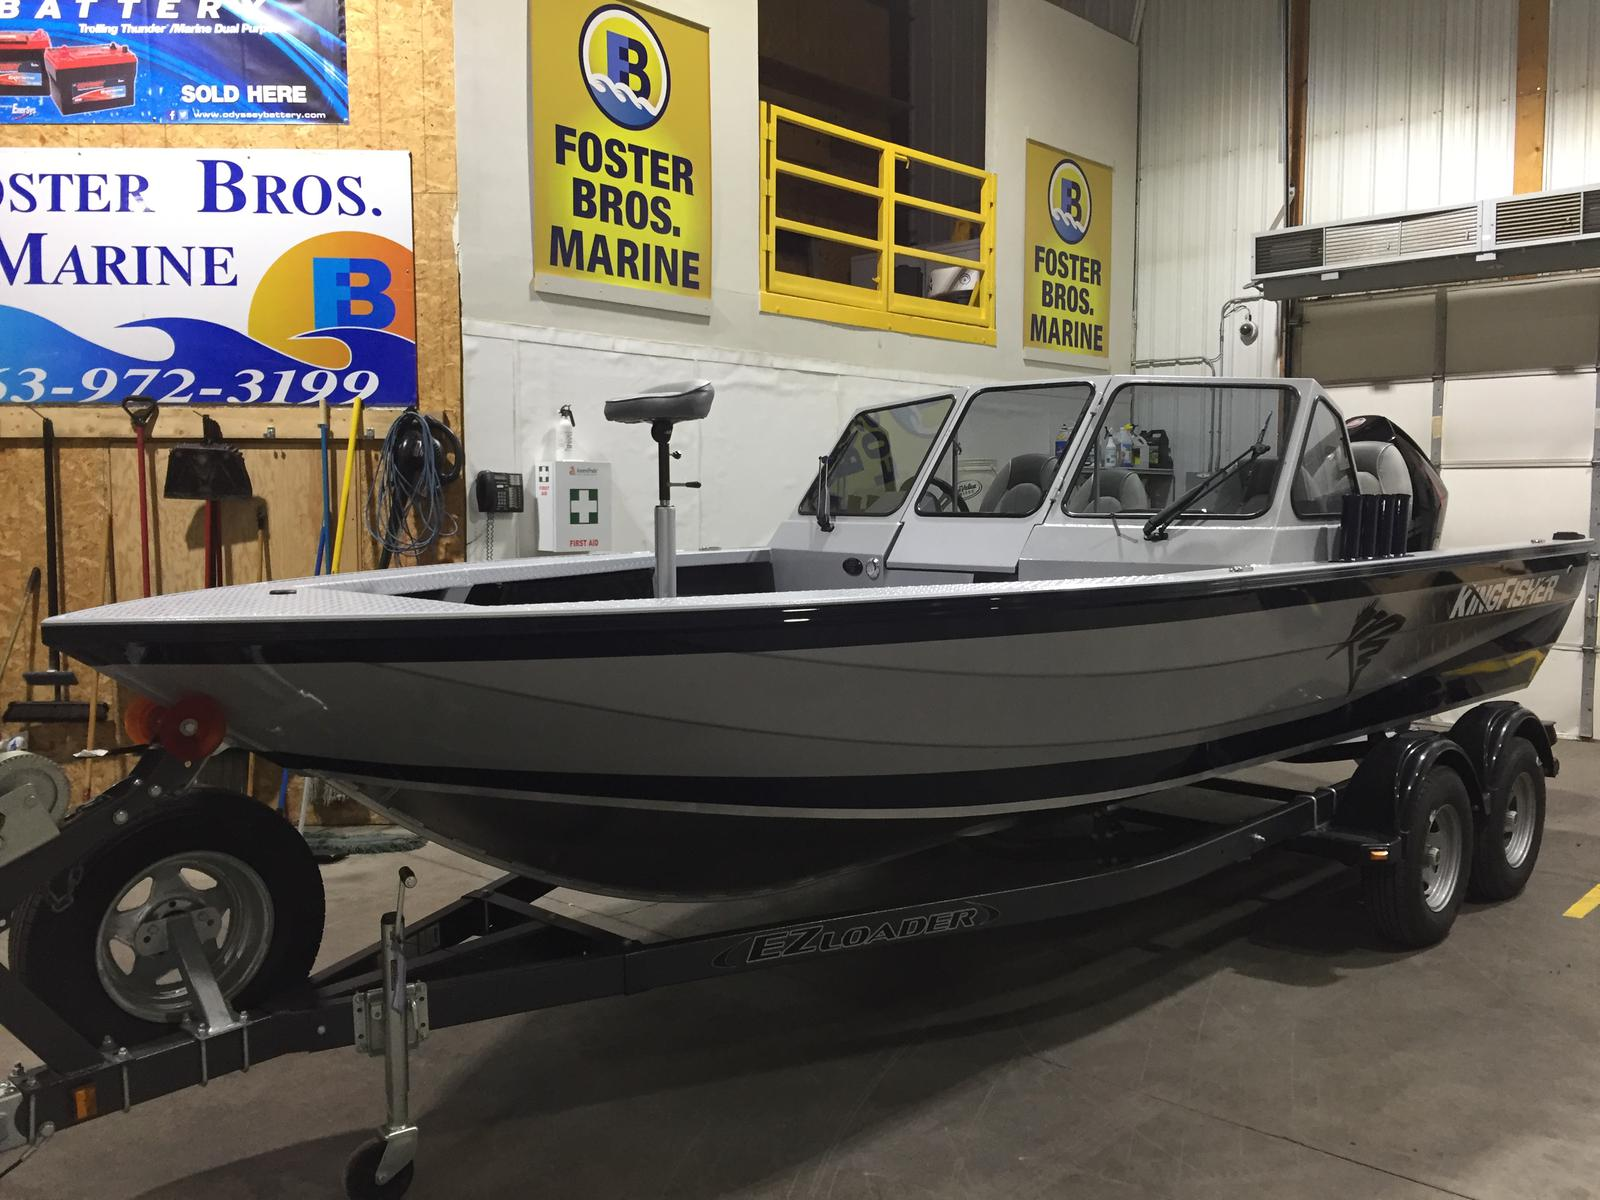 Inventory from Kingfisher Boats and ShoreLand'r Foster Bros  Marine